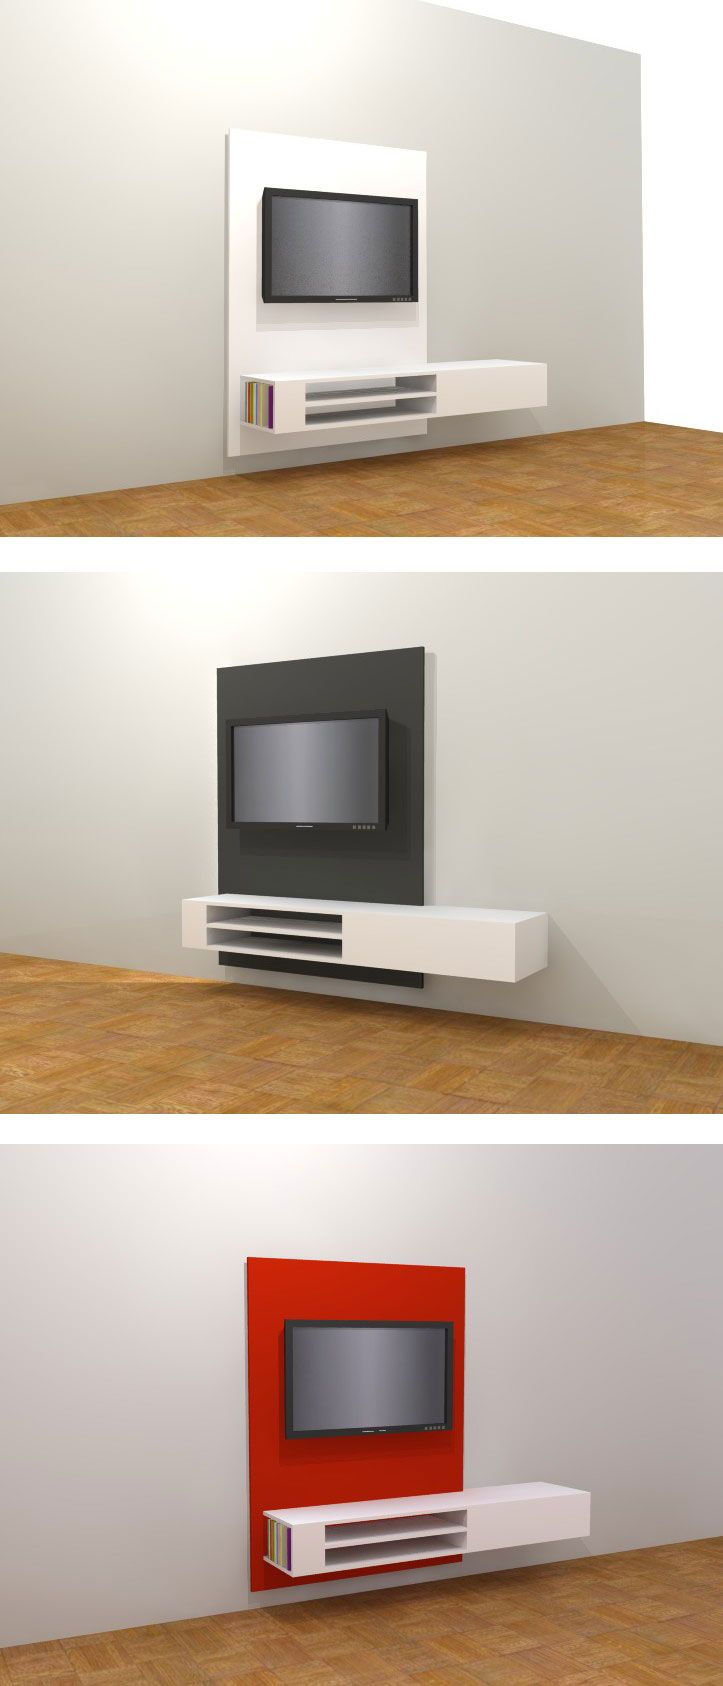 Floating Tv Stand Floating Tv-stand / Cabinet 'jordi'. Modern Diy, Design By